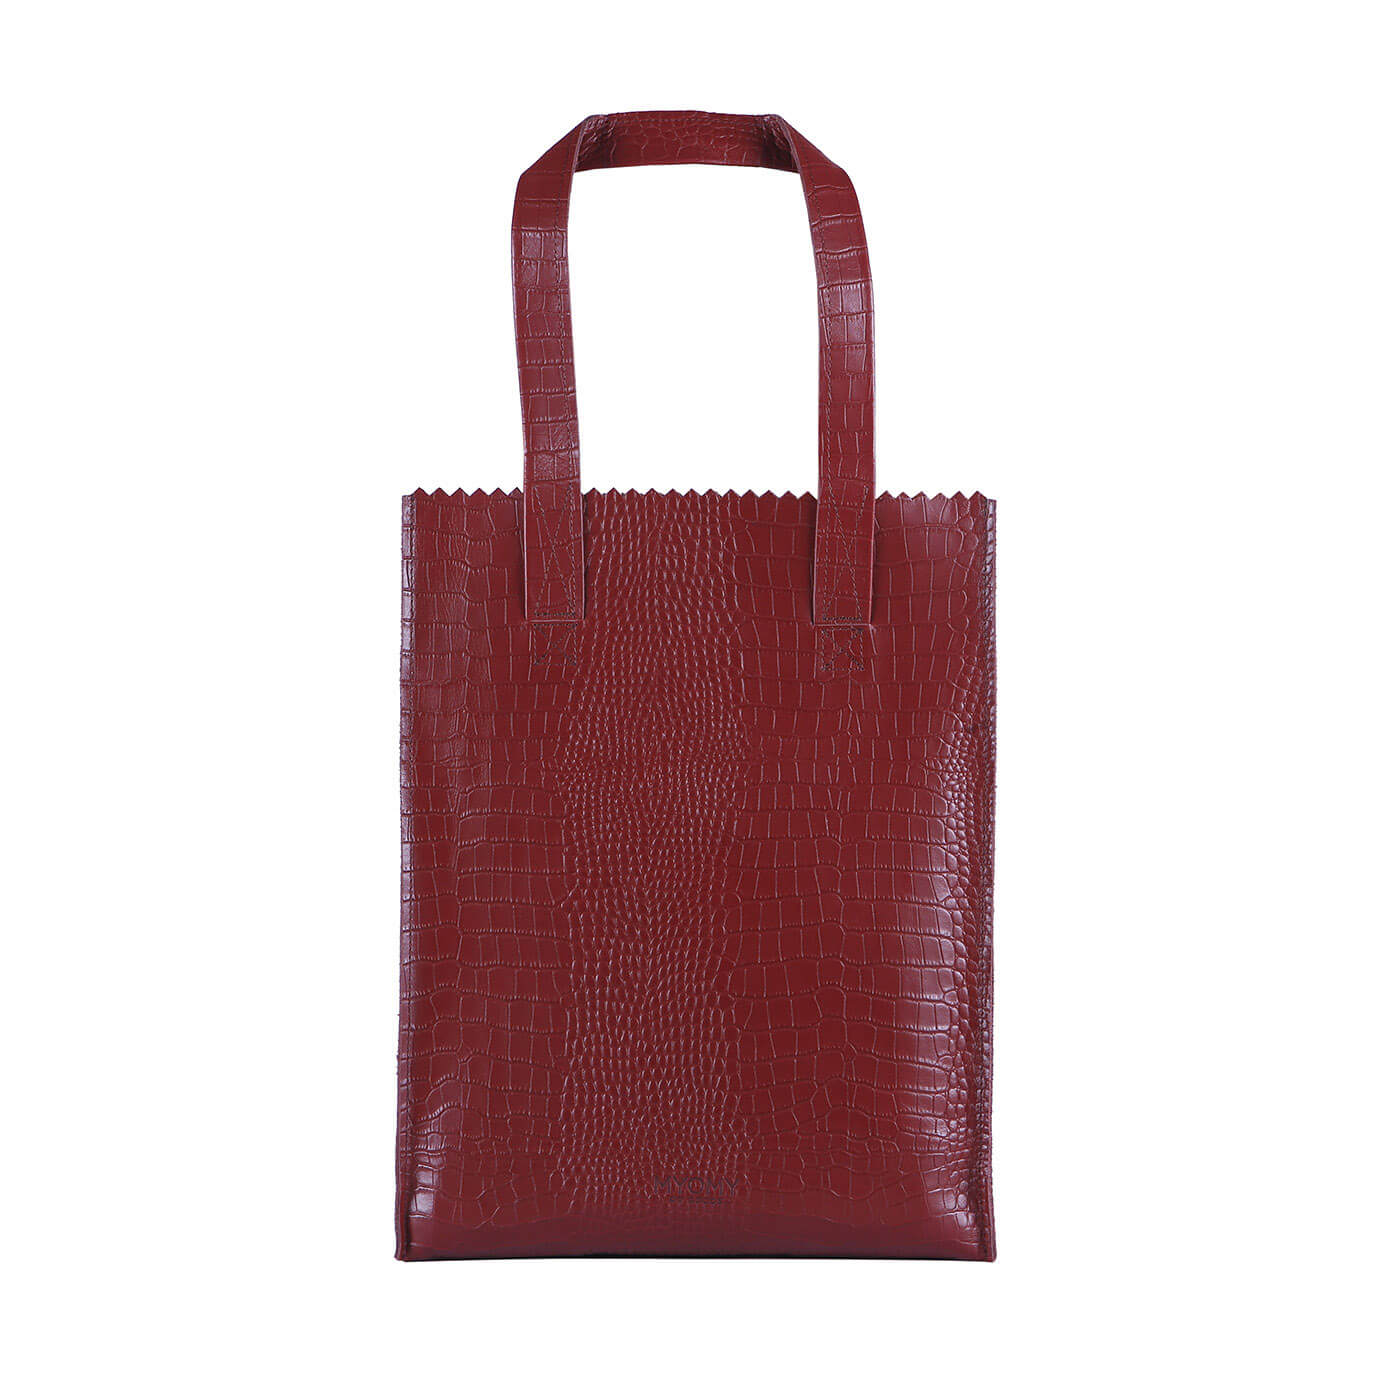 [PRE-ORDER] MY PAPER BAG Long handle zip – croco burgundy